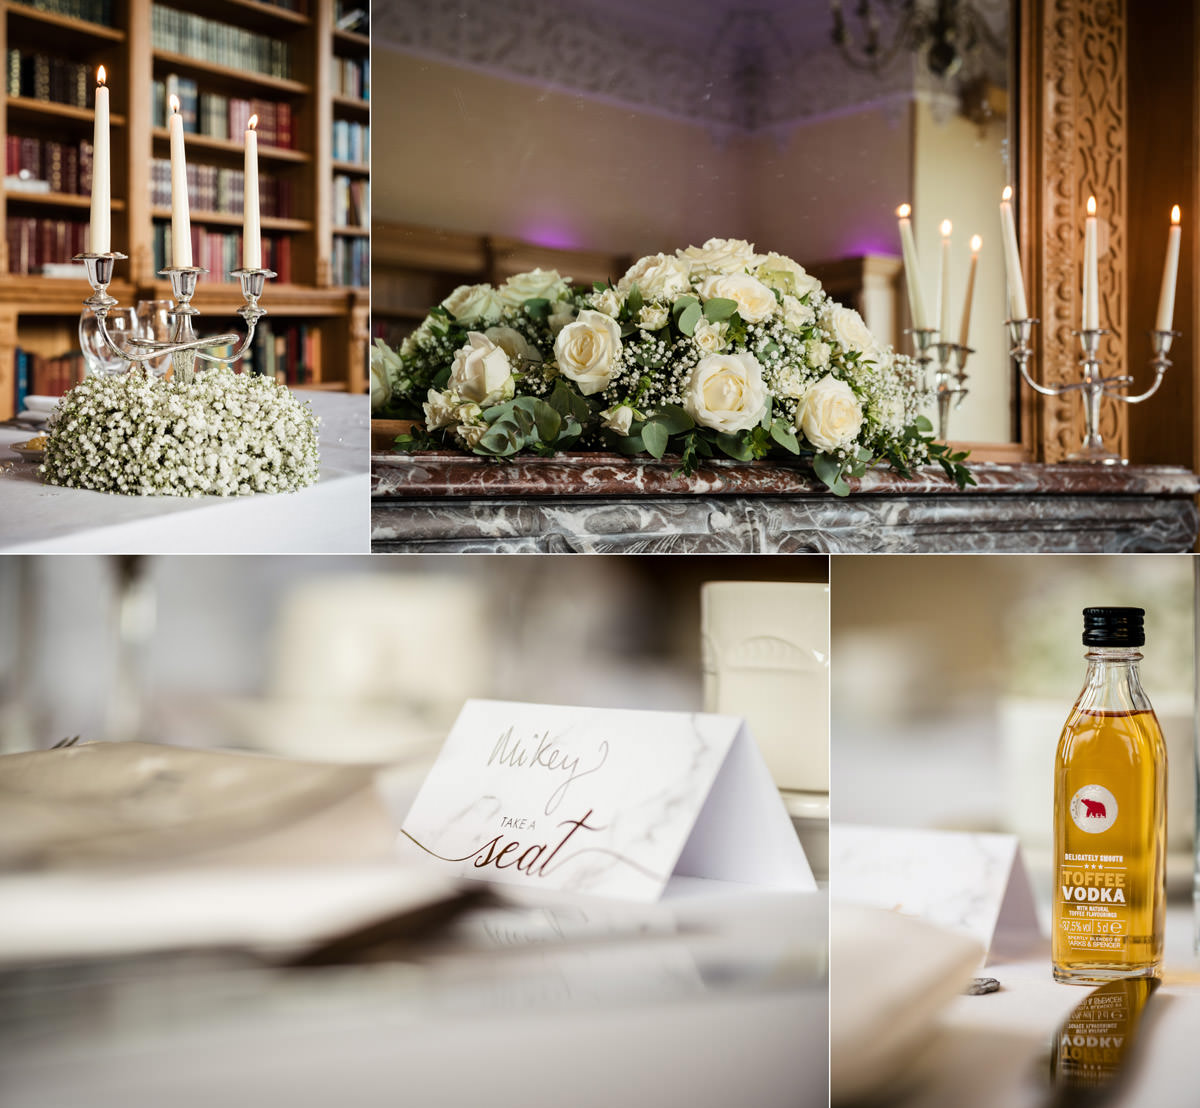 Wedding flowers, stationery & favours on the dinner tables at Stoke Rochford Hall, Grantham